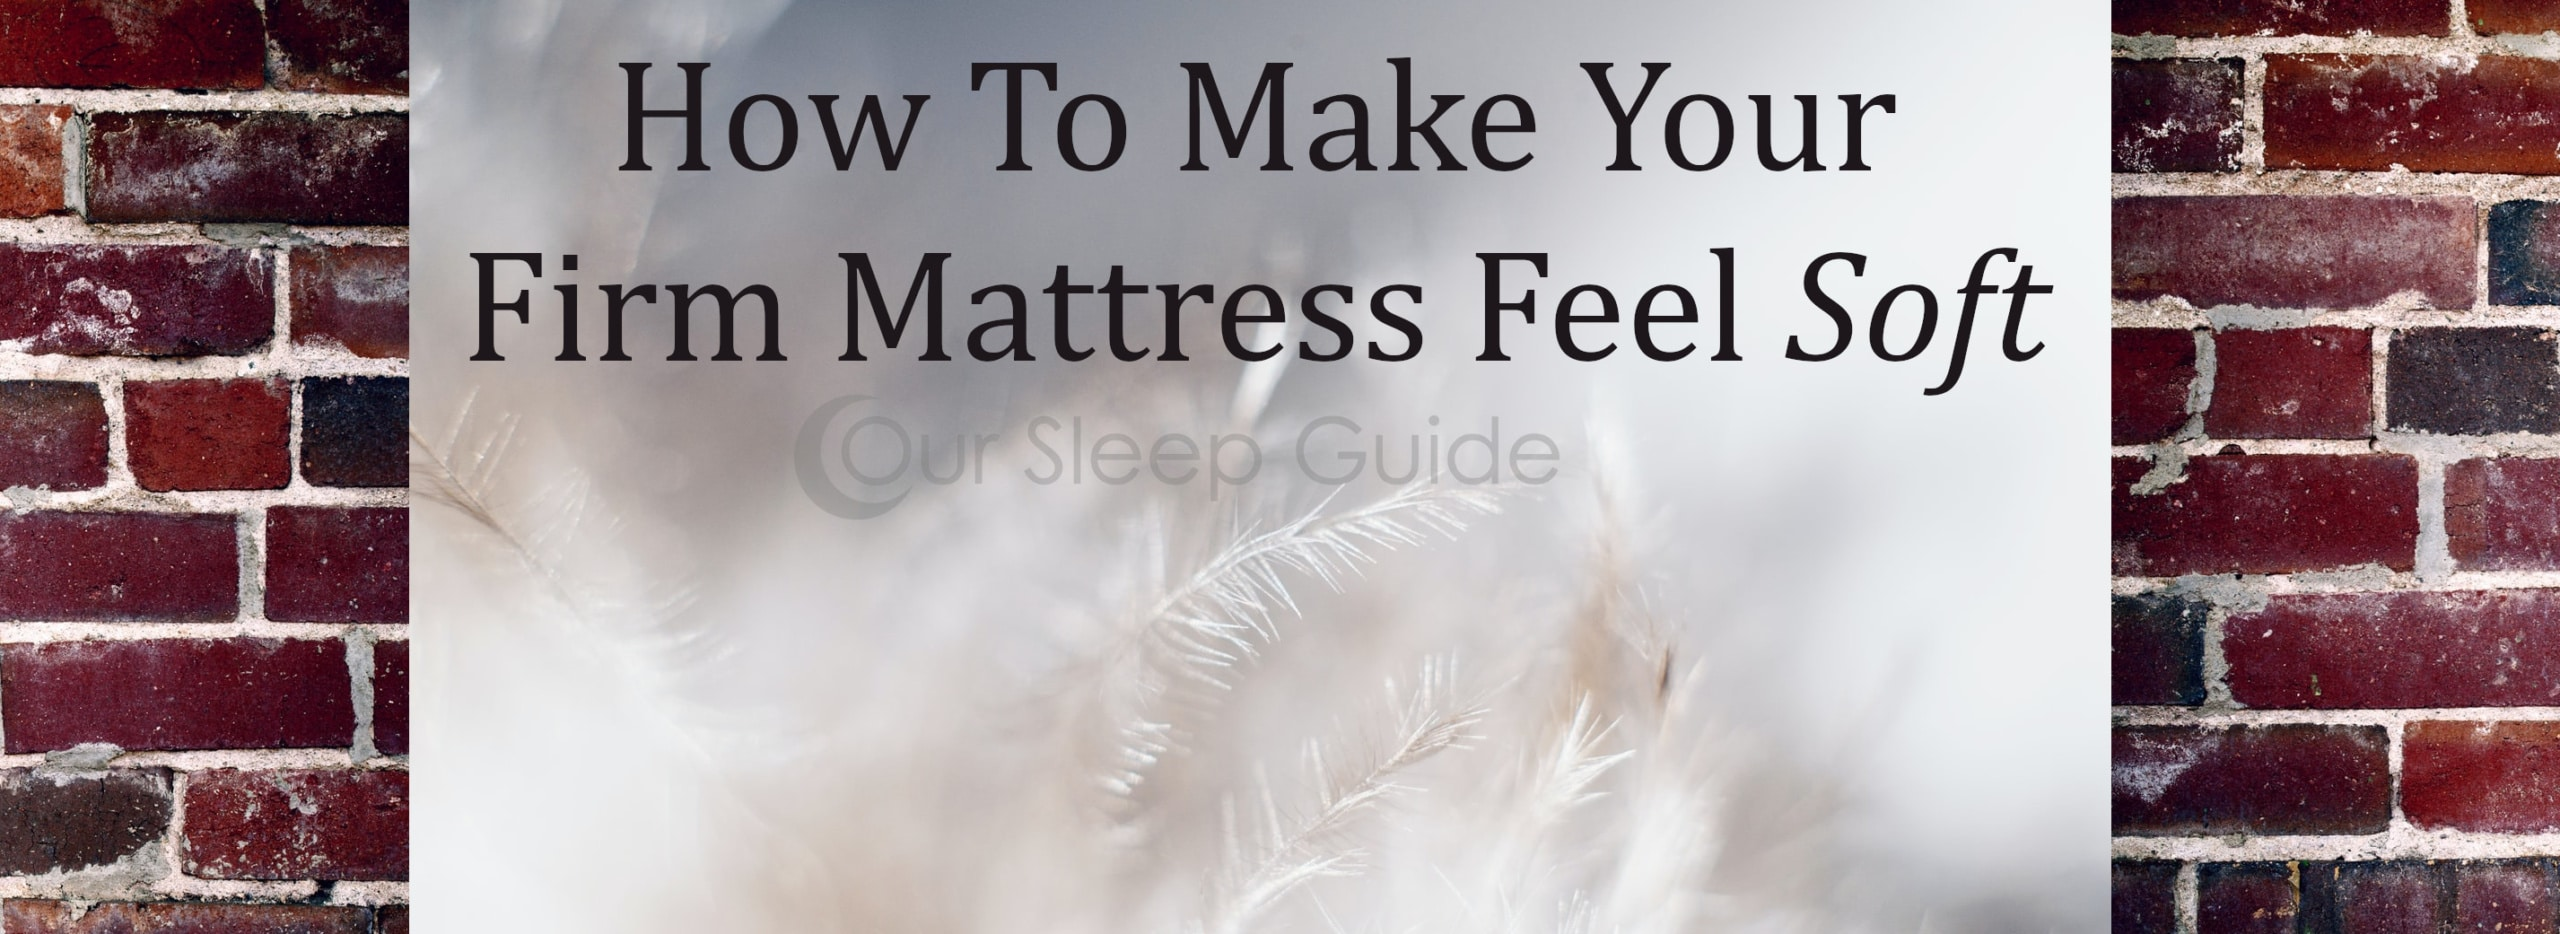 How To Make Your Firm Mattress Feel Soft